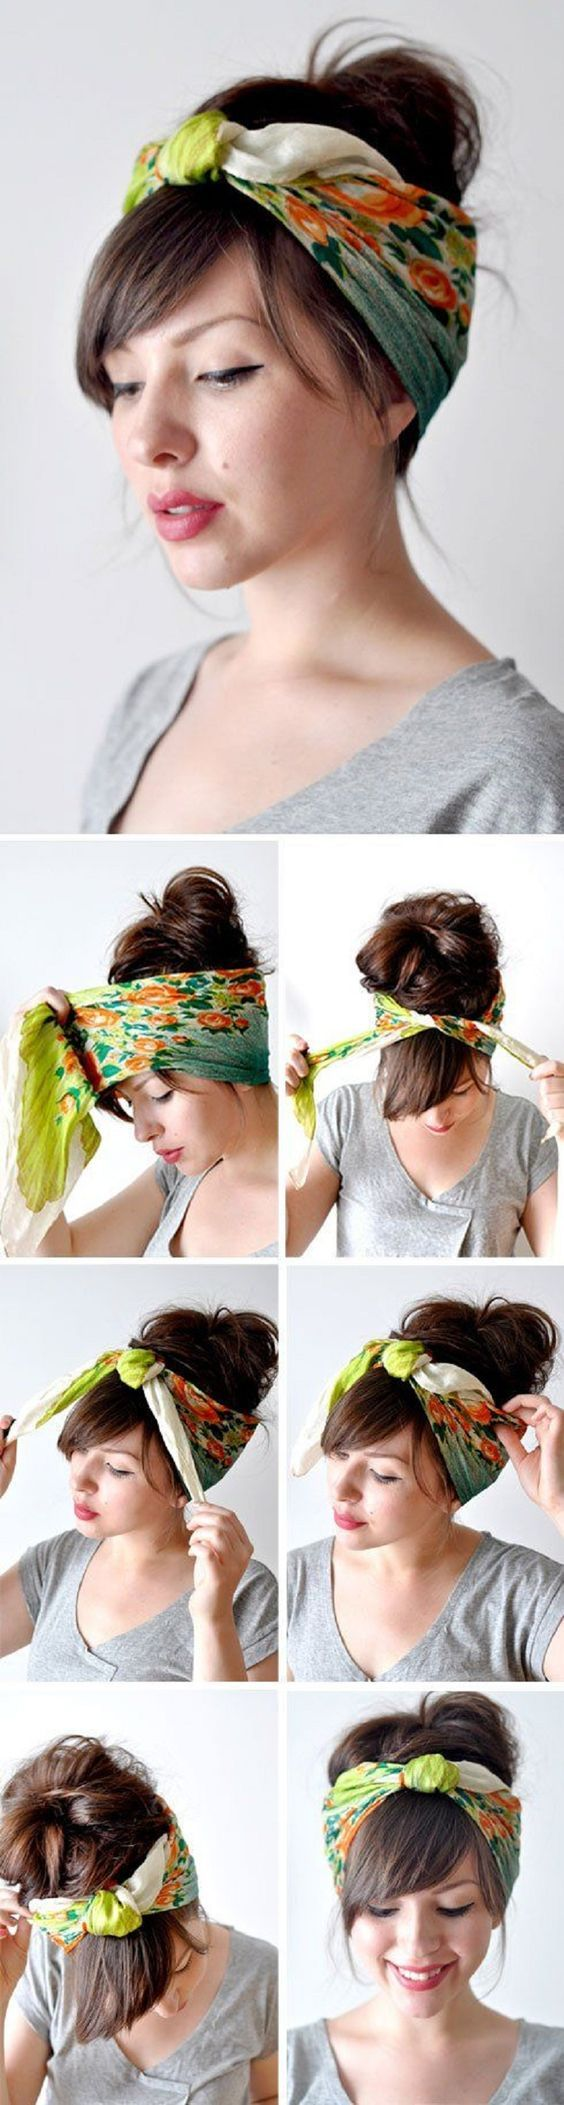 Bandana Hairstyles - Top 10 Simple Ways [Tutorials] - Top Inspired